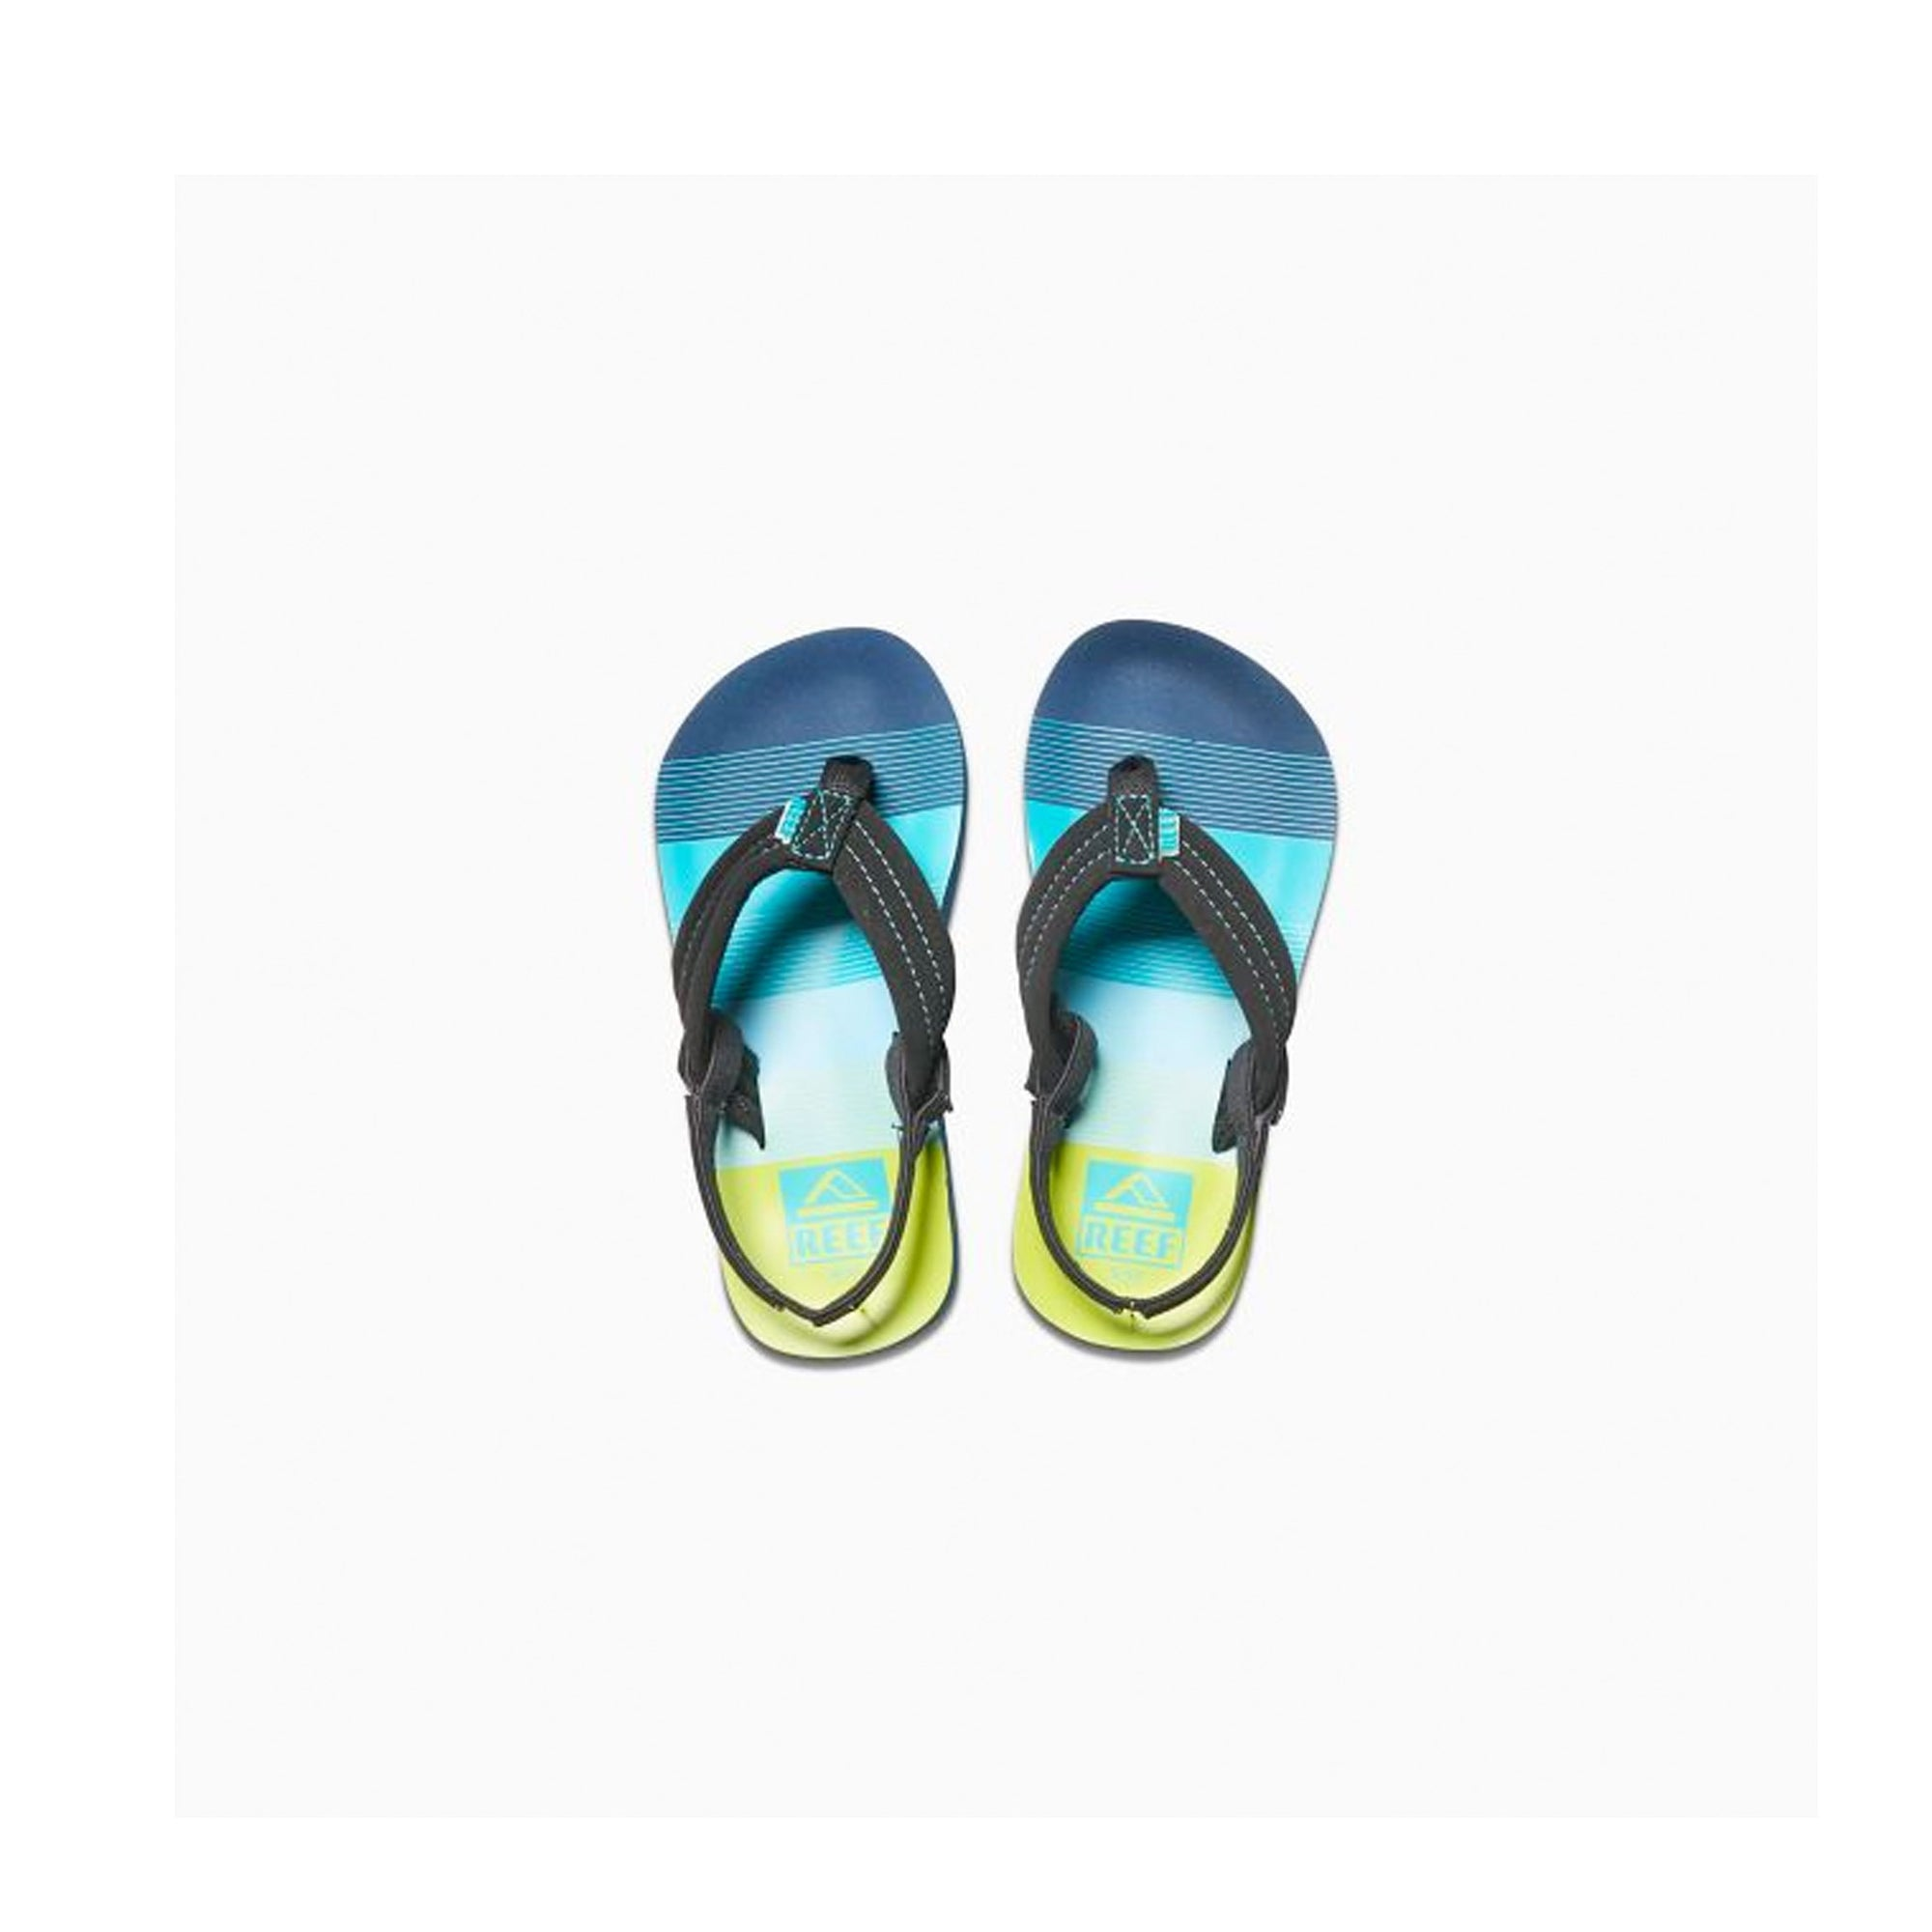 Reef Little Ahi Youth Boy's Sandals - Stripe Green